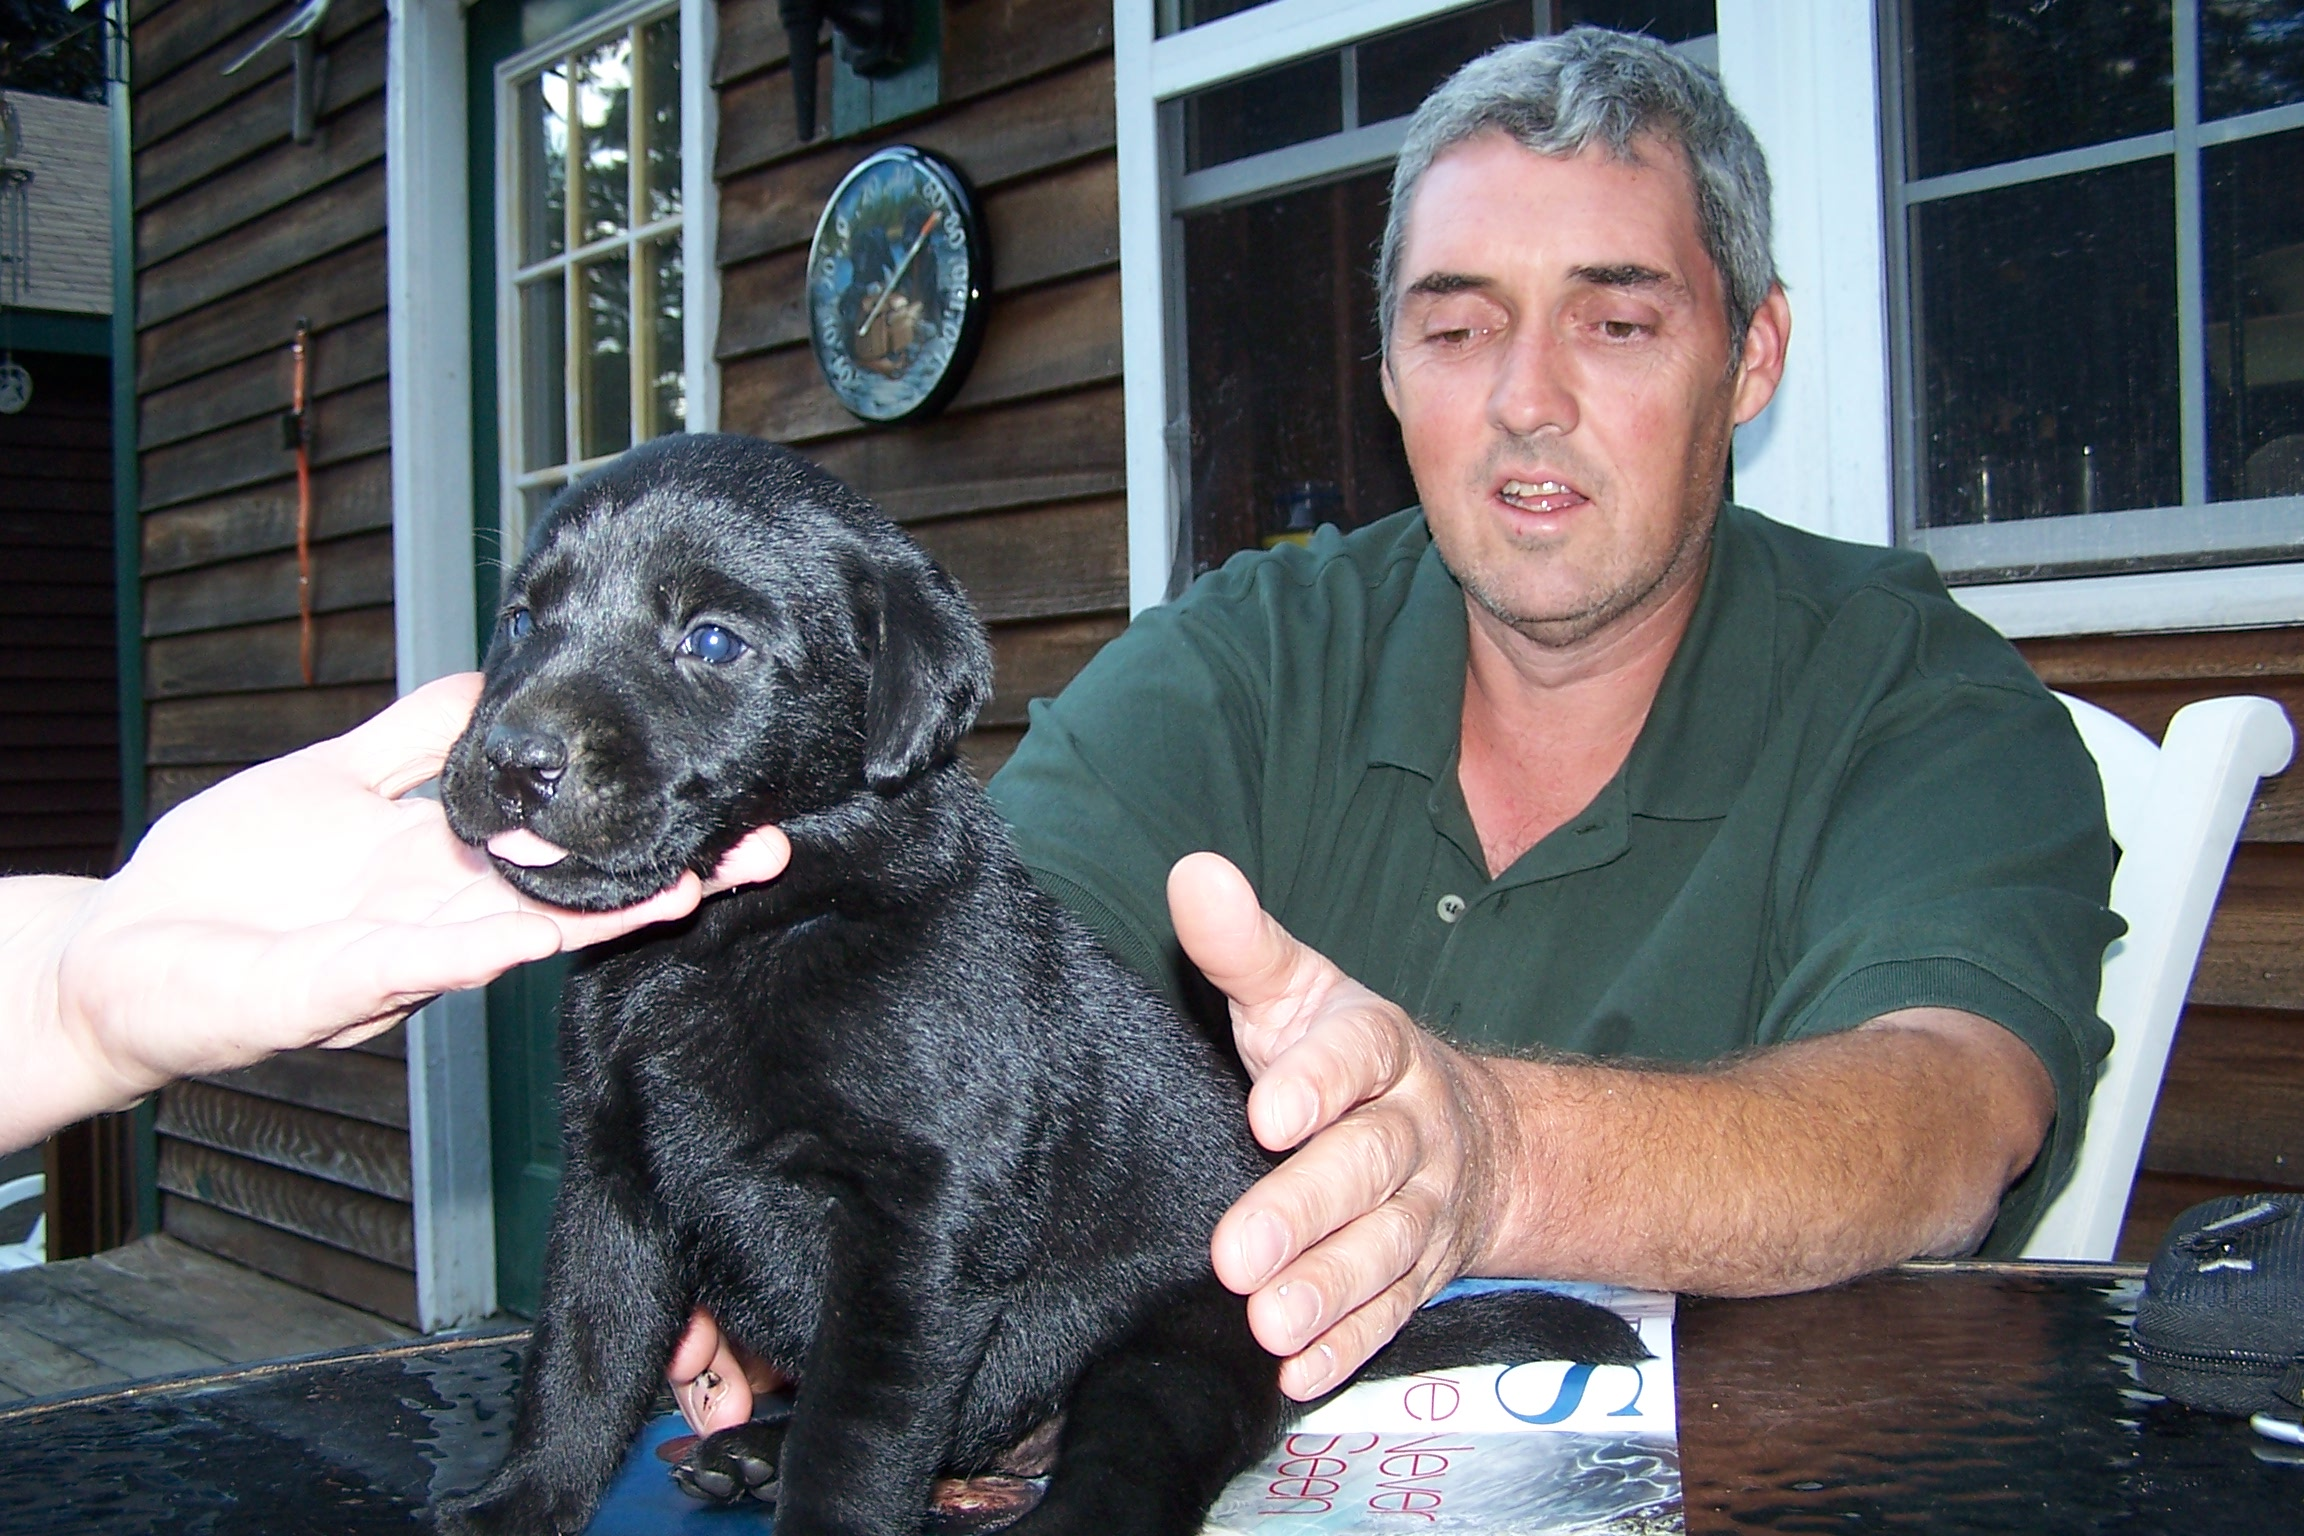 New owner David with Black Male